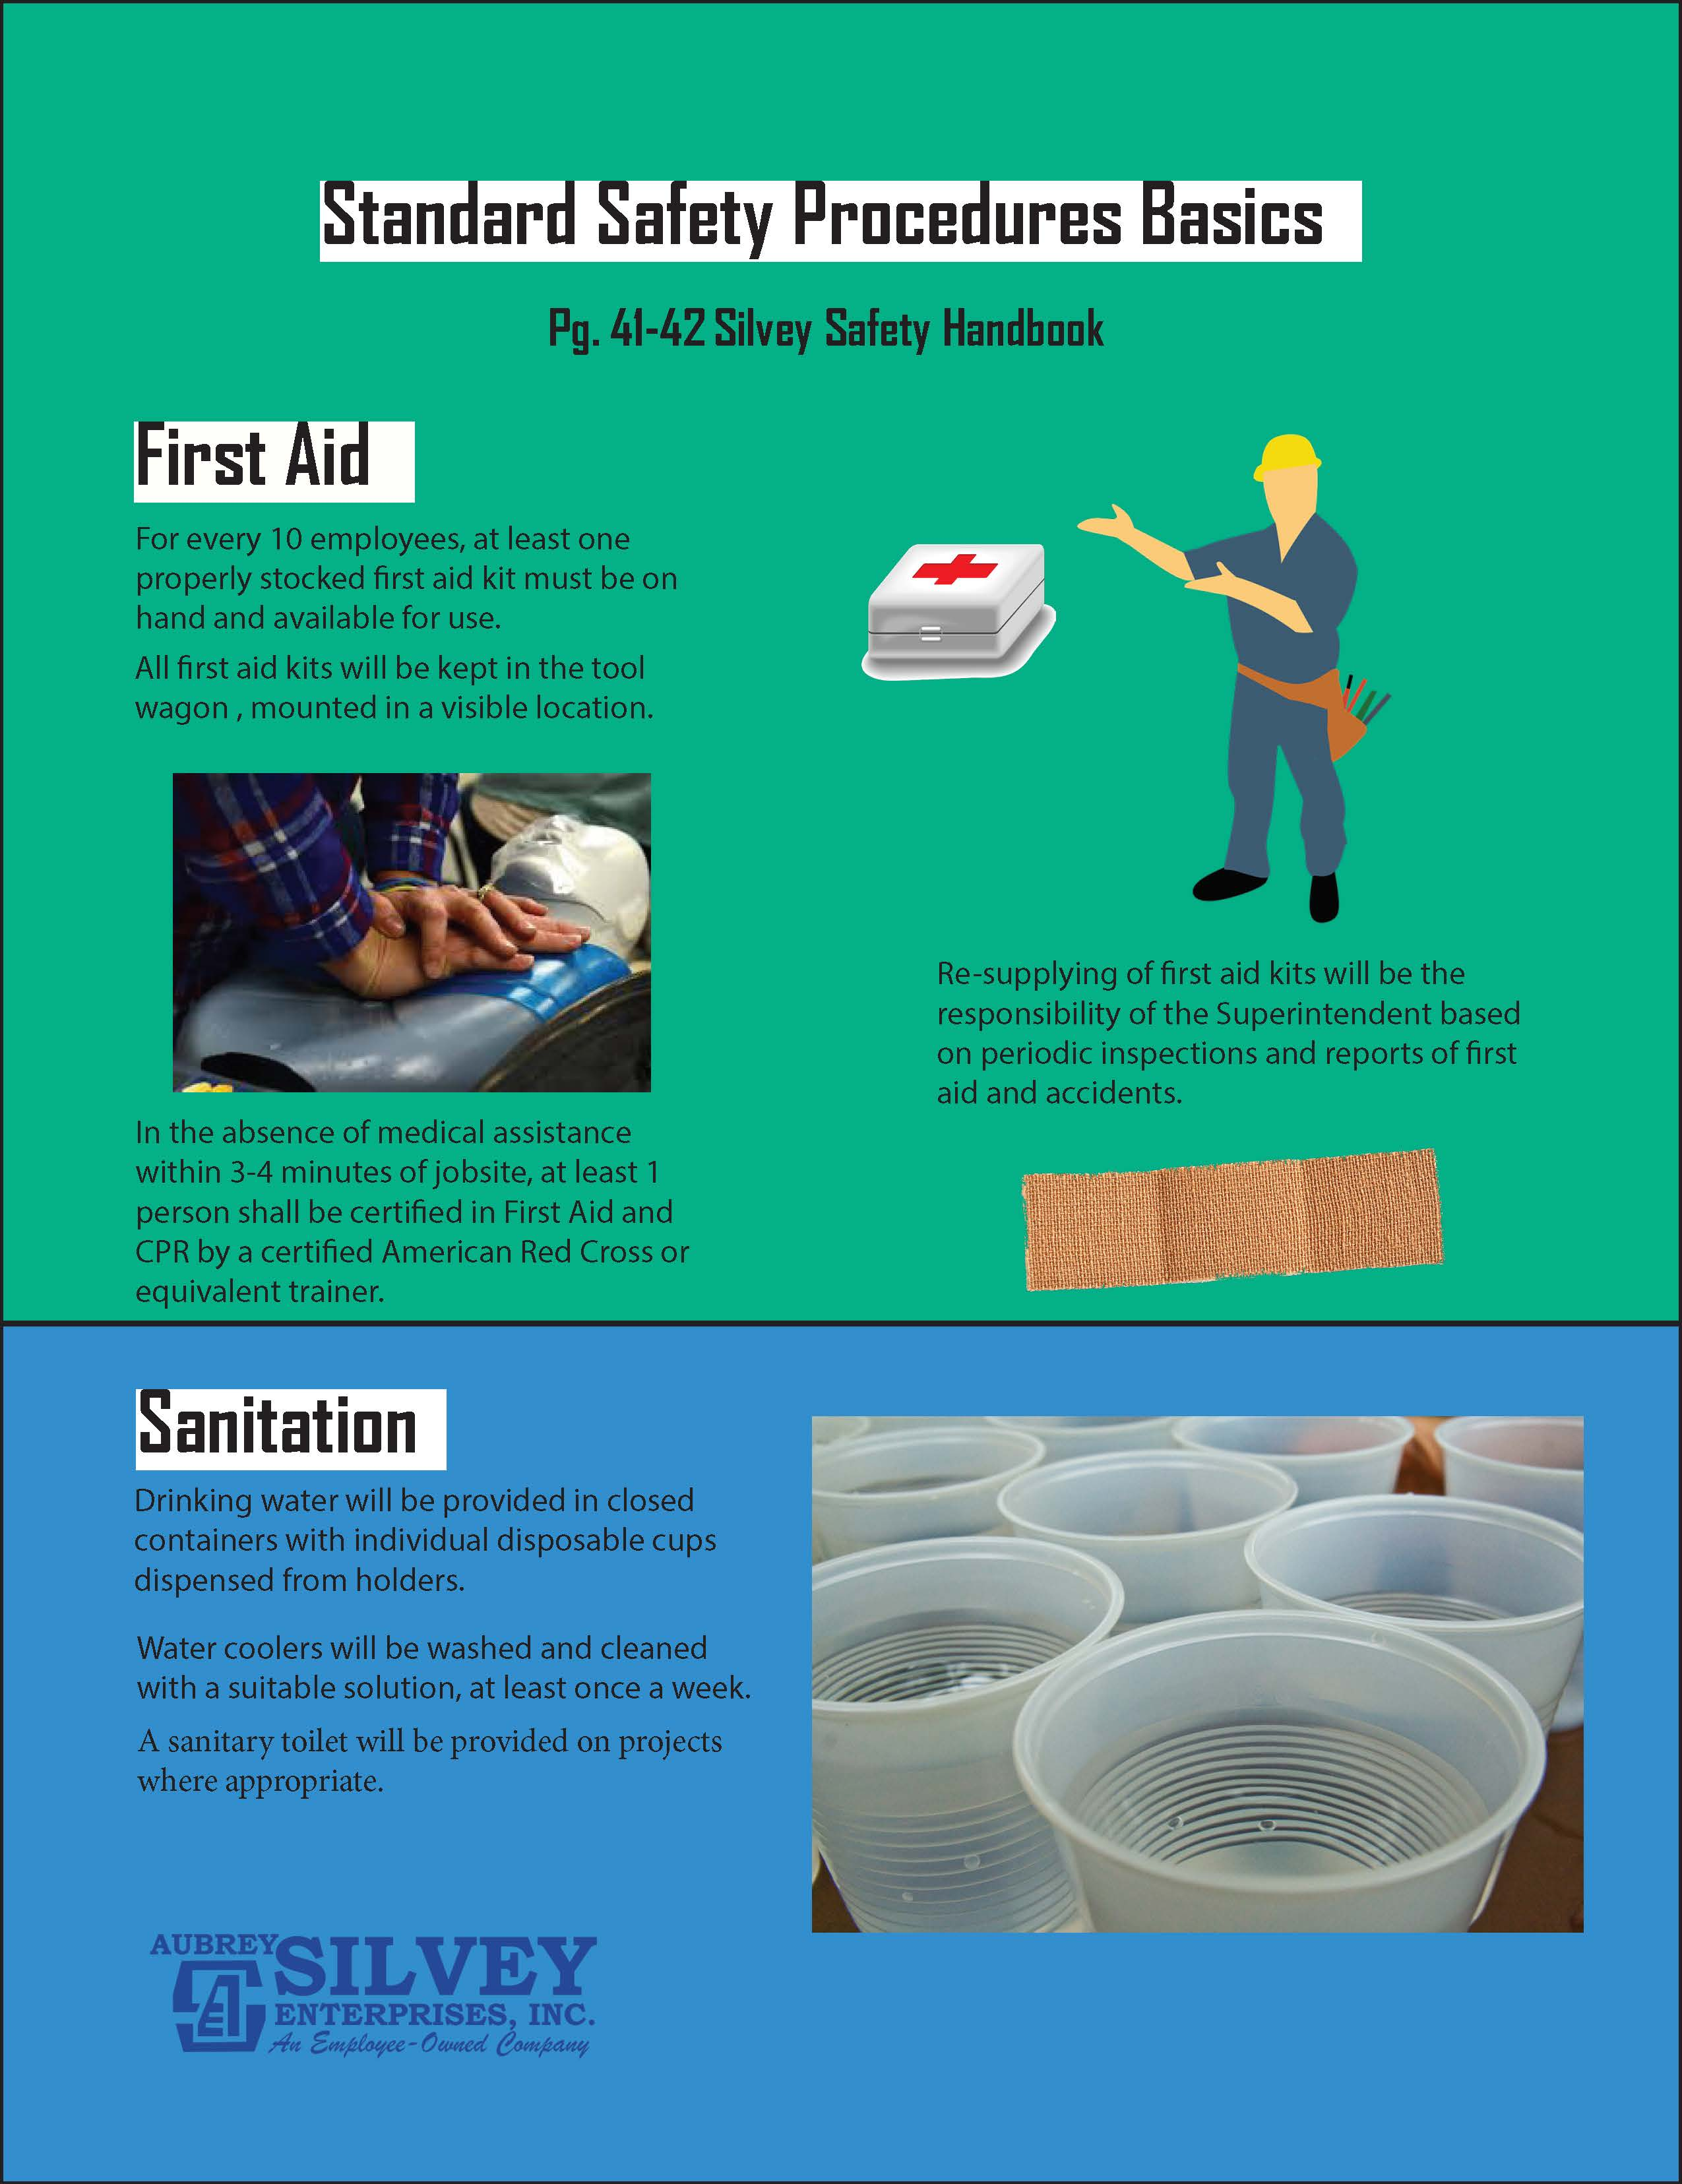 Posted in Industry Topics Tagged first aid,housekeeping,manual,materials, safety,sanitation,silvey,storage